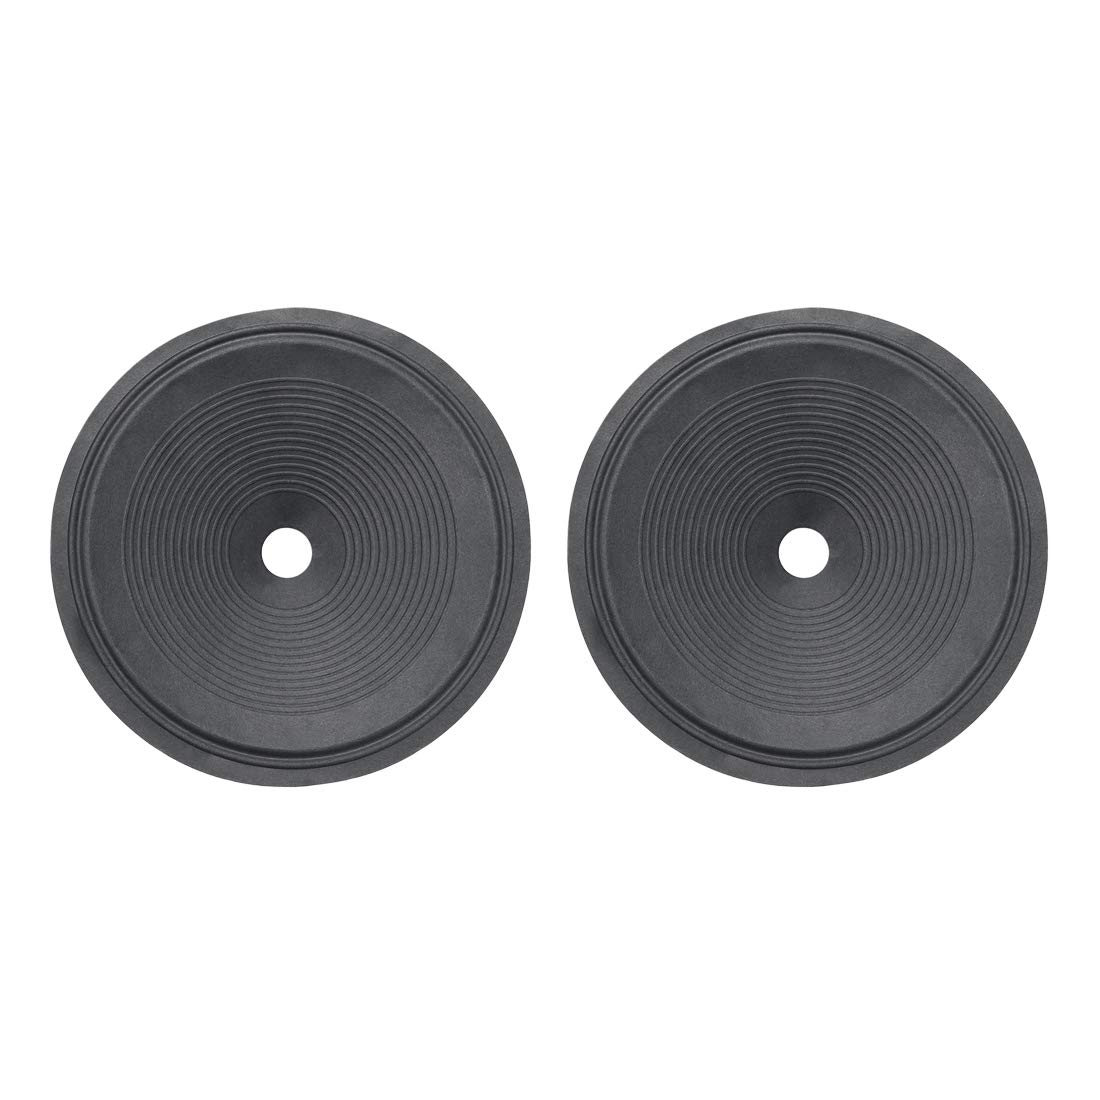 uxcell 10'' Paper Speaker Cone Subwoofer Drum Ripple Paper 1'' Coil Diameter with 2 Surround 2 Pcs